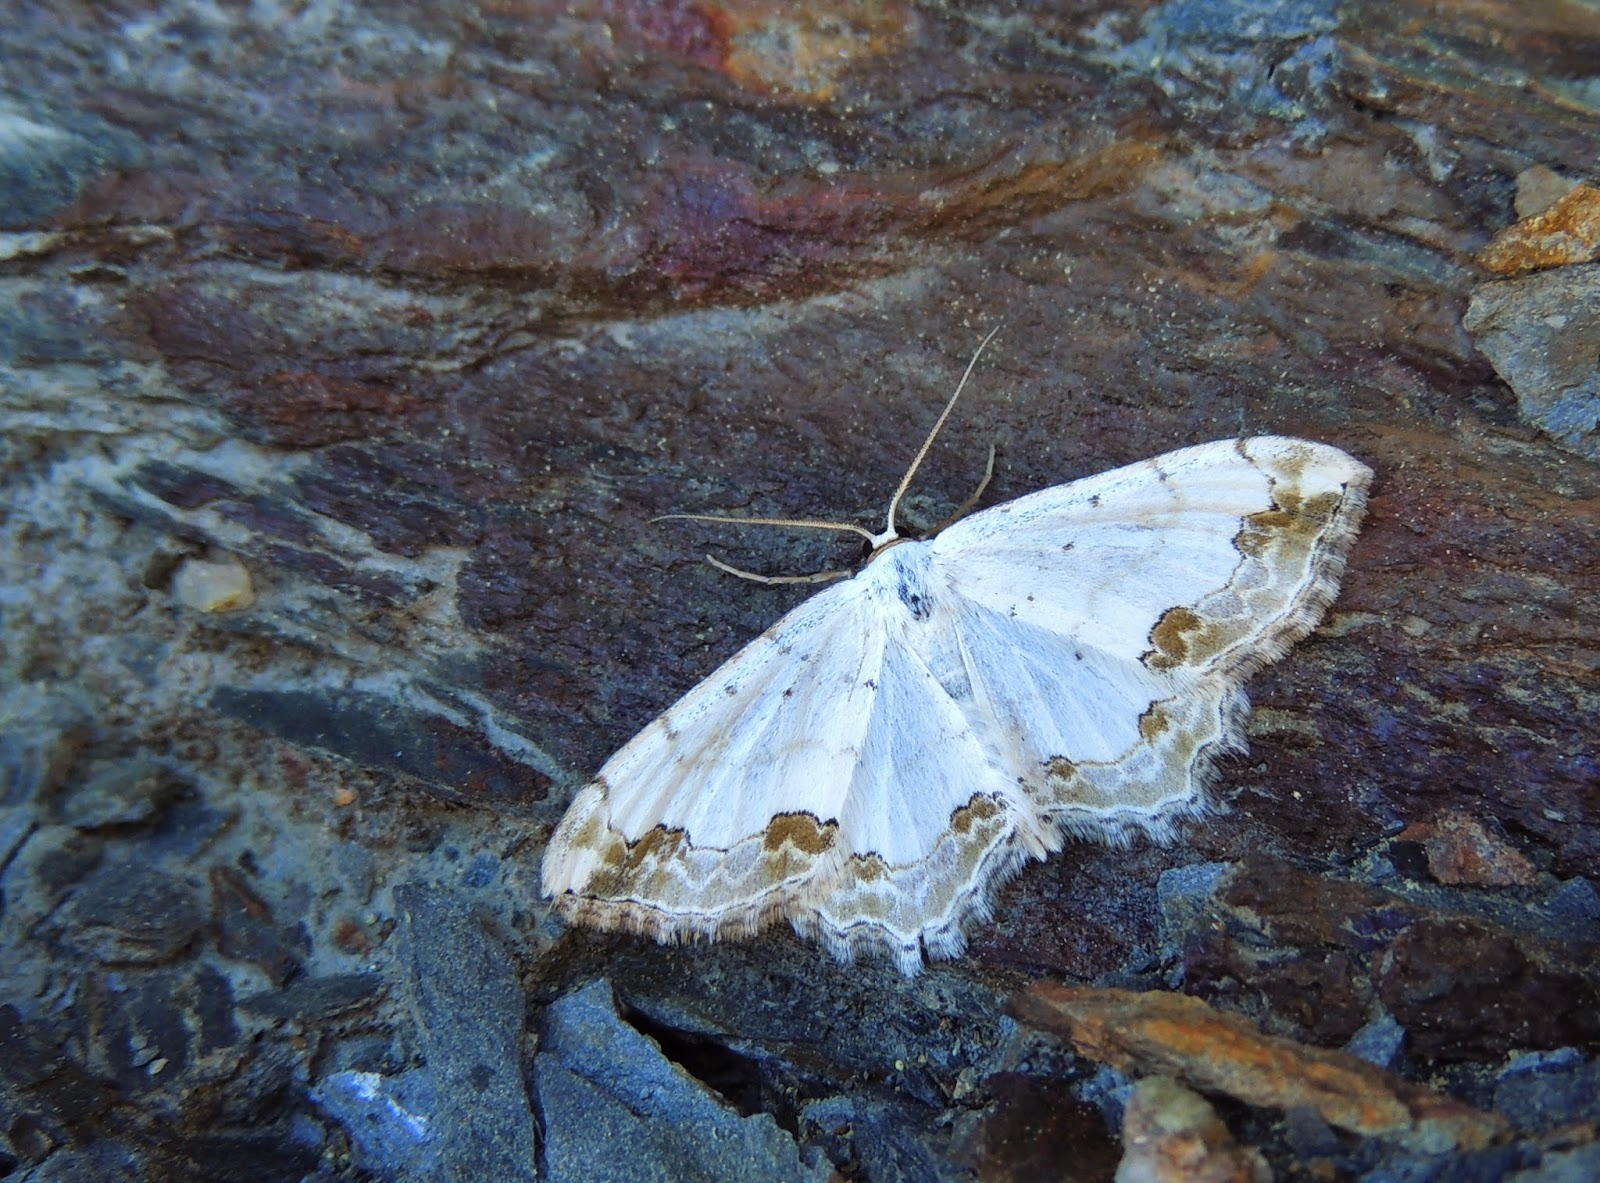 Scopula ornata